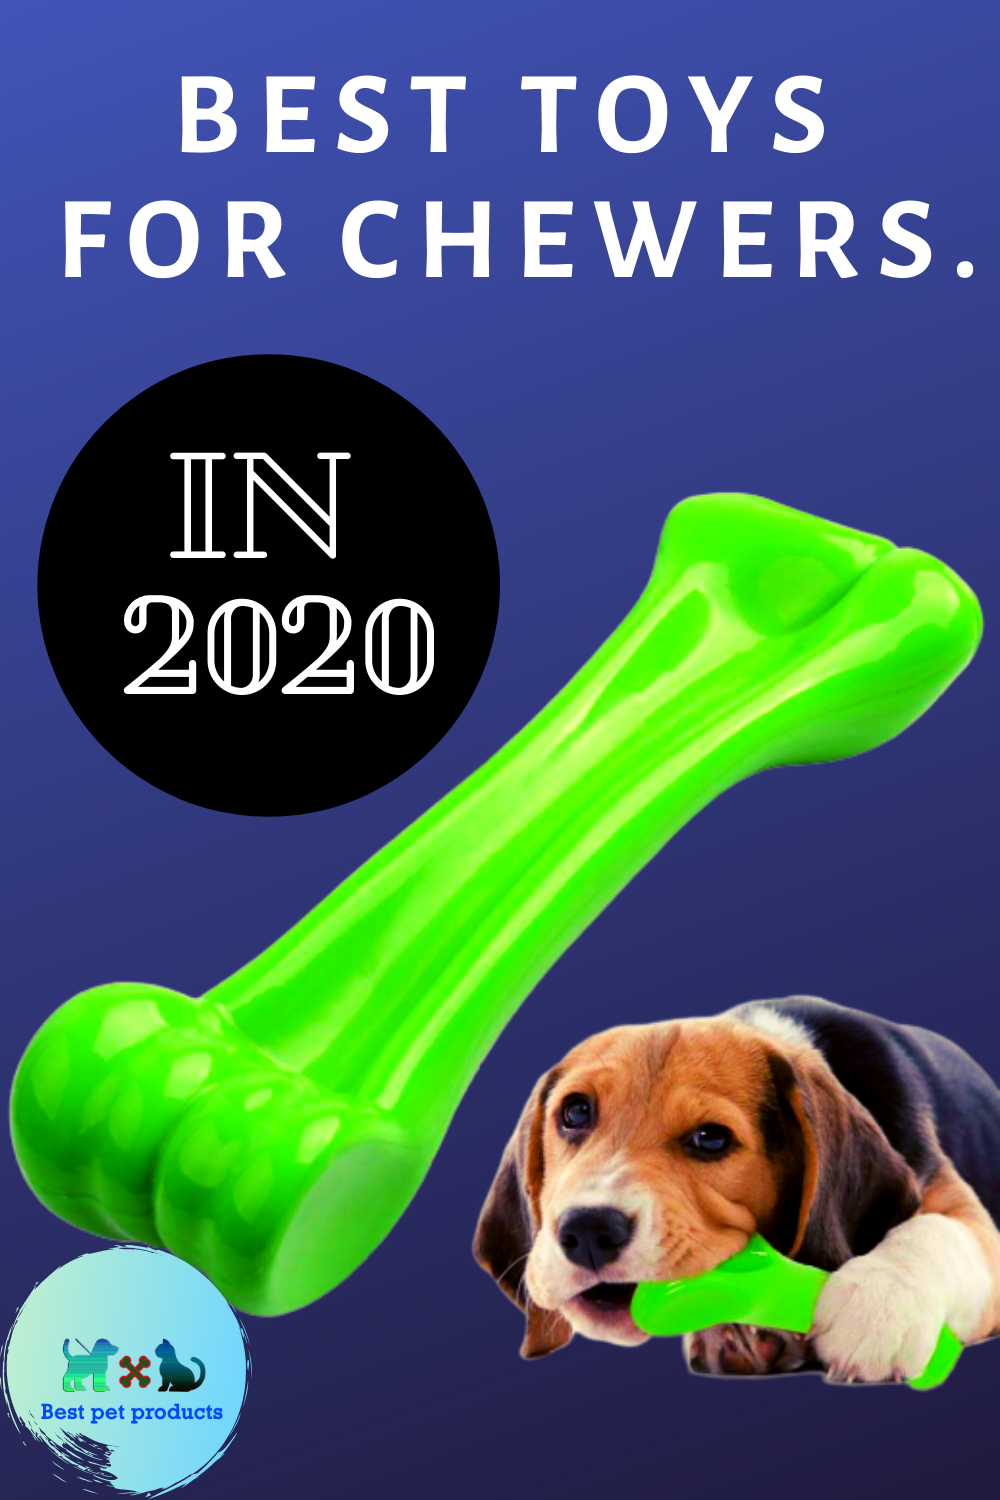 Best Dog Toys For Chewers 2020 Top 5 Chew Toys For Dogs In 2020 Best Dog Toys For Chewers Best Dog Toys Dog Toys